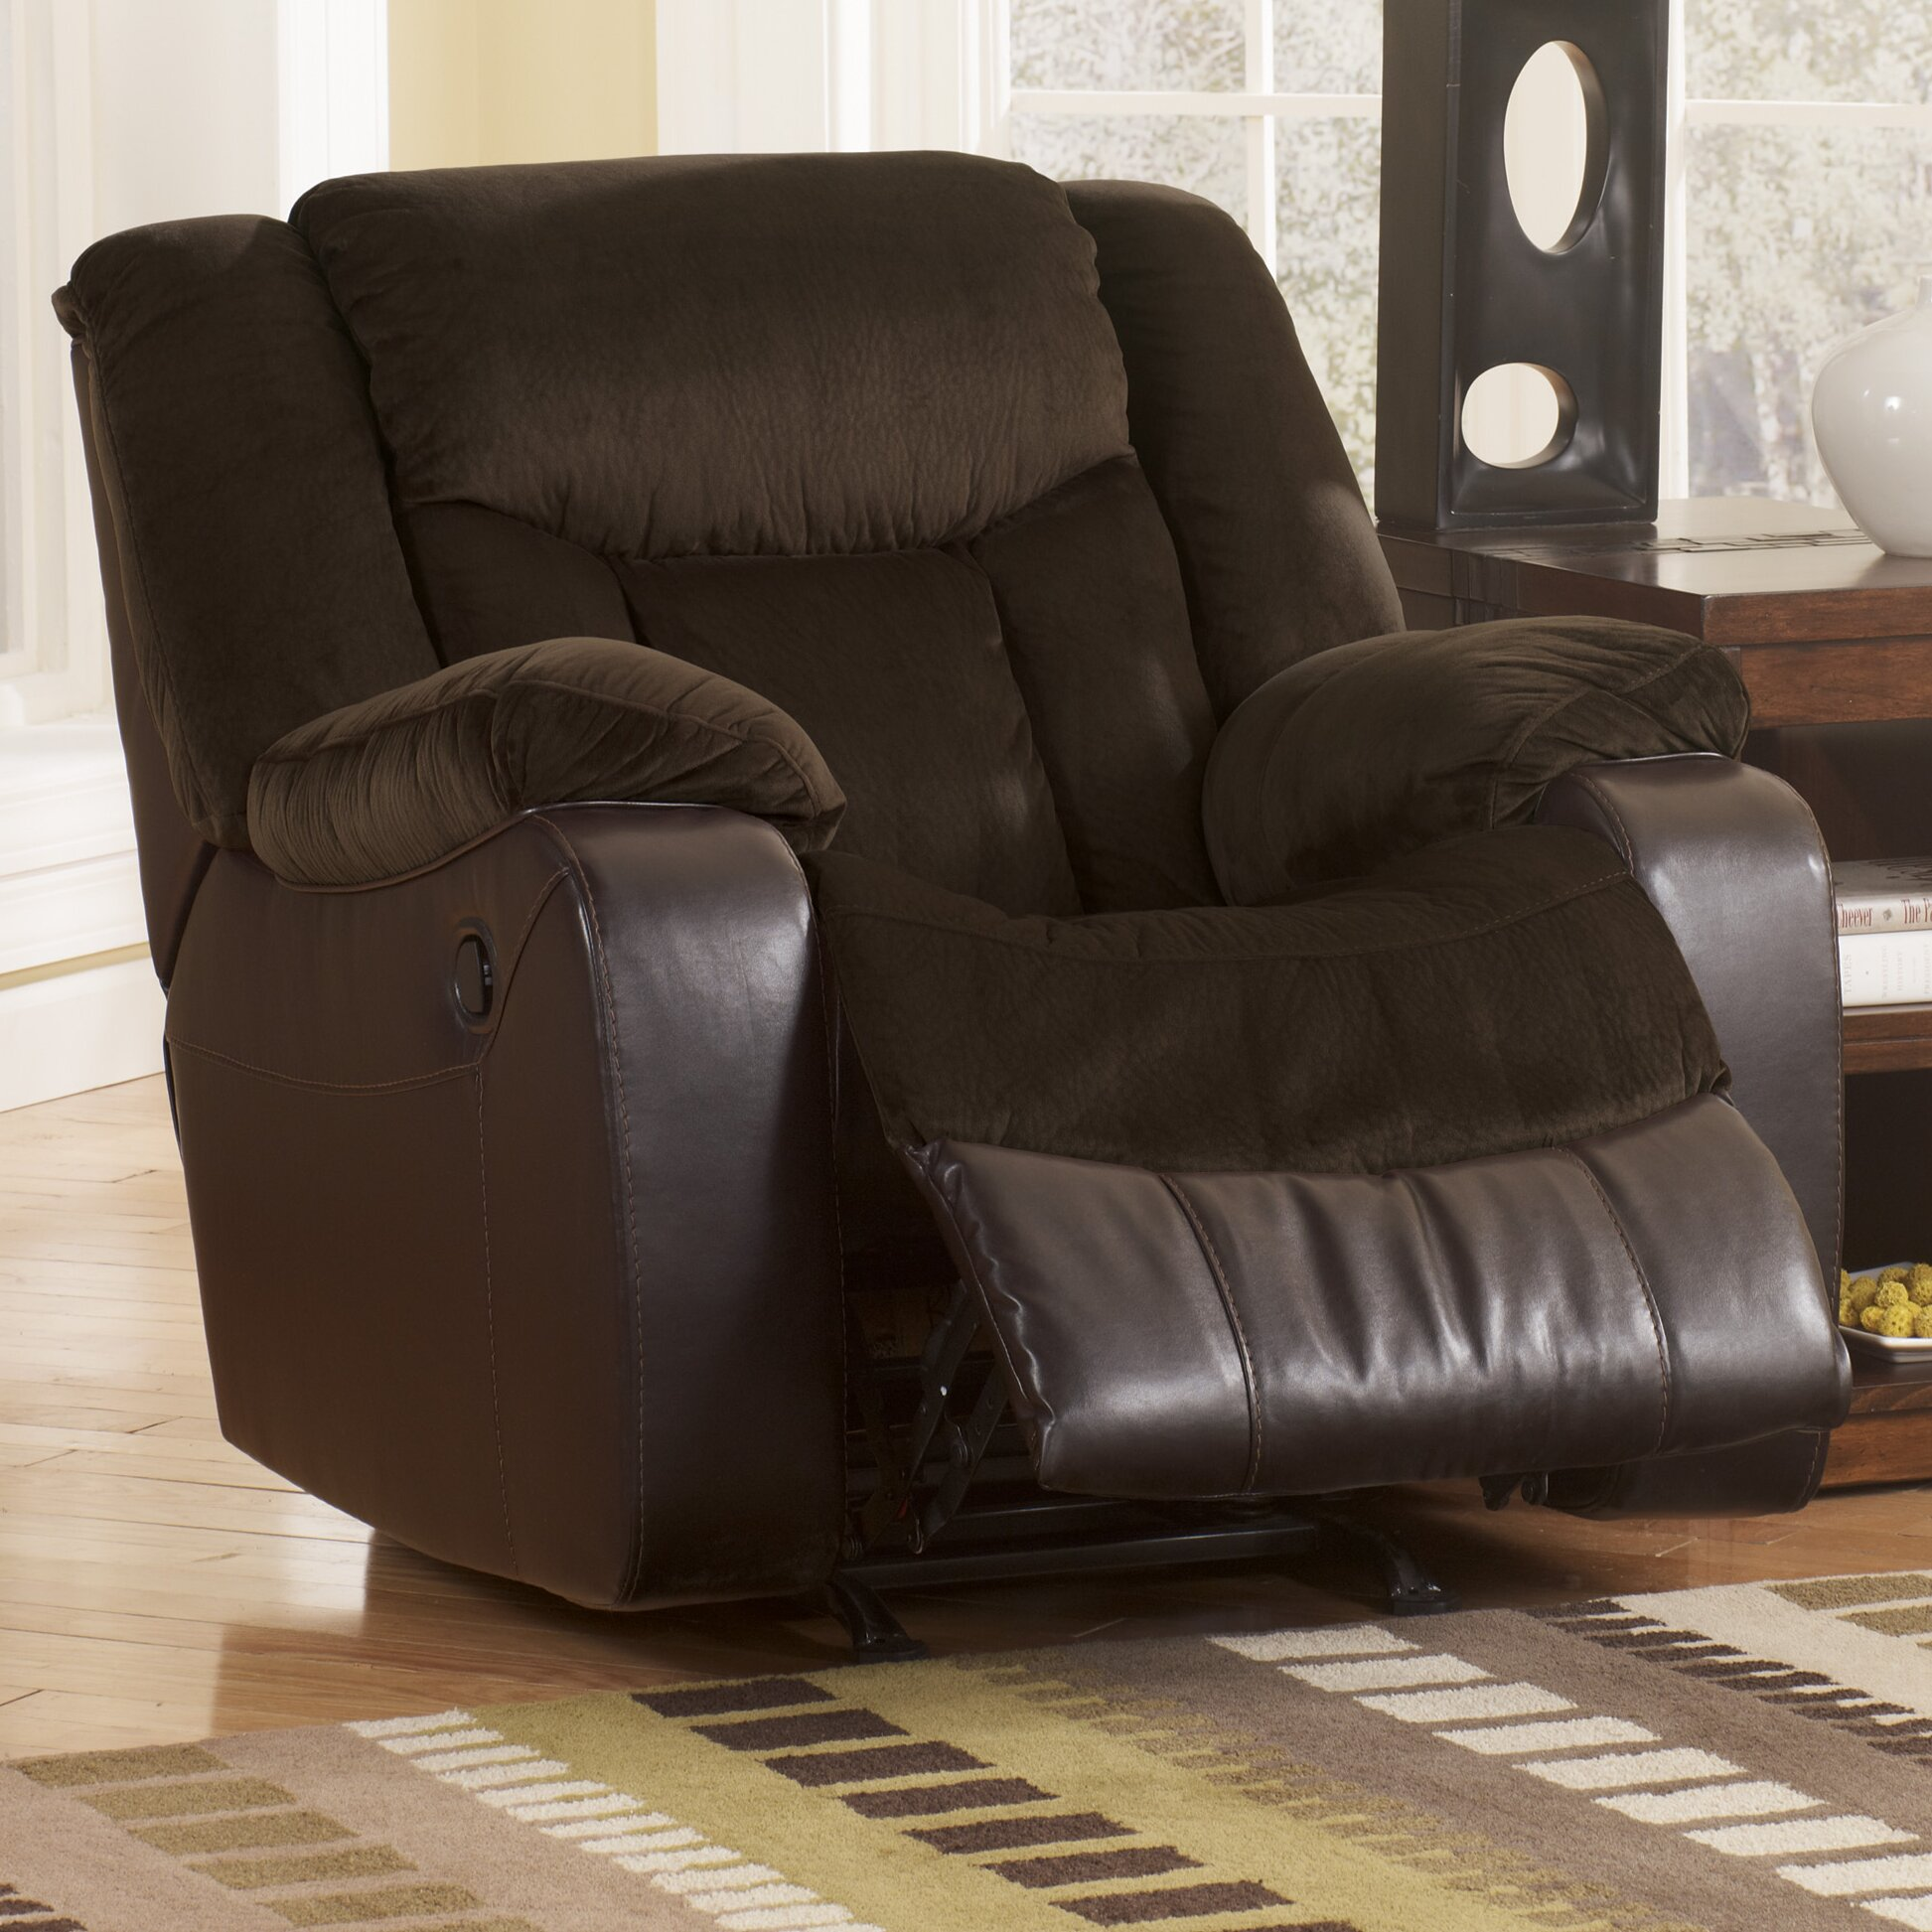 Signature design by ashley bay and chaise recliner for Ashley chaise lounge recliner